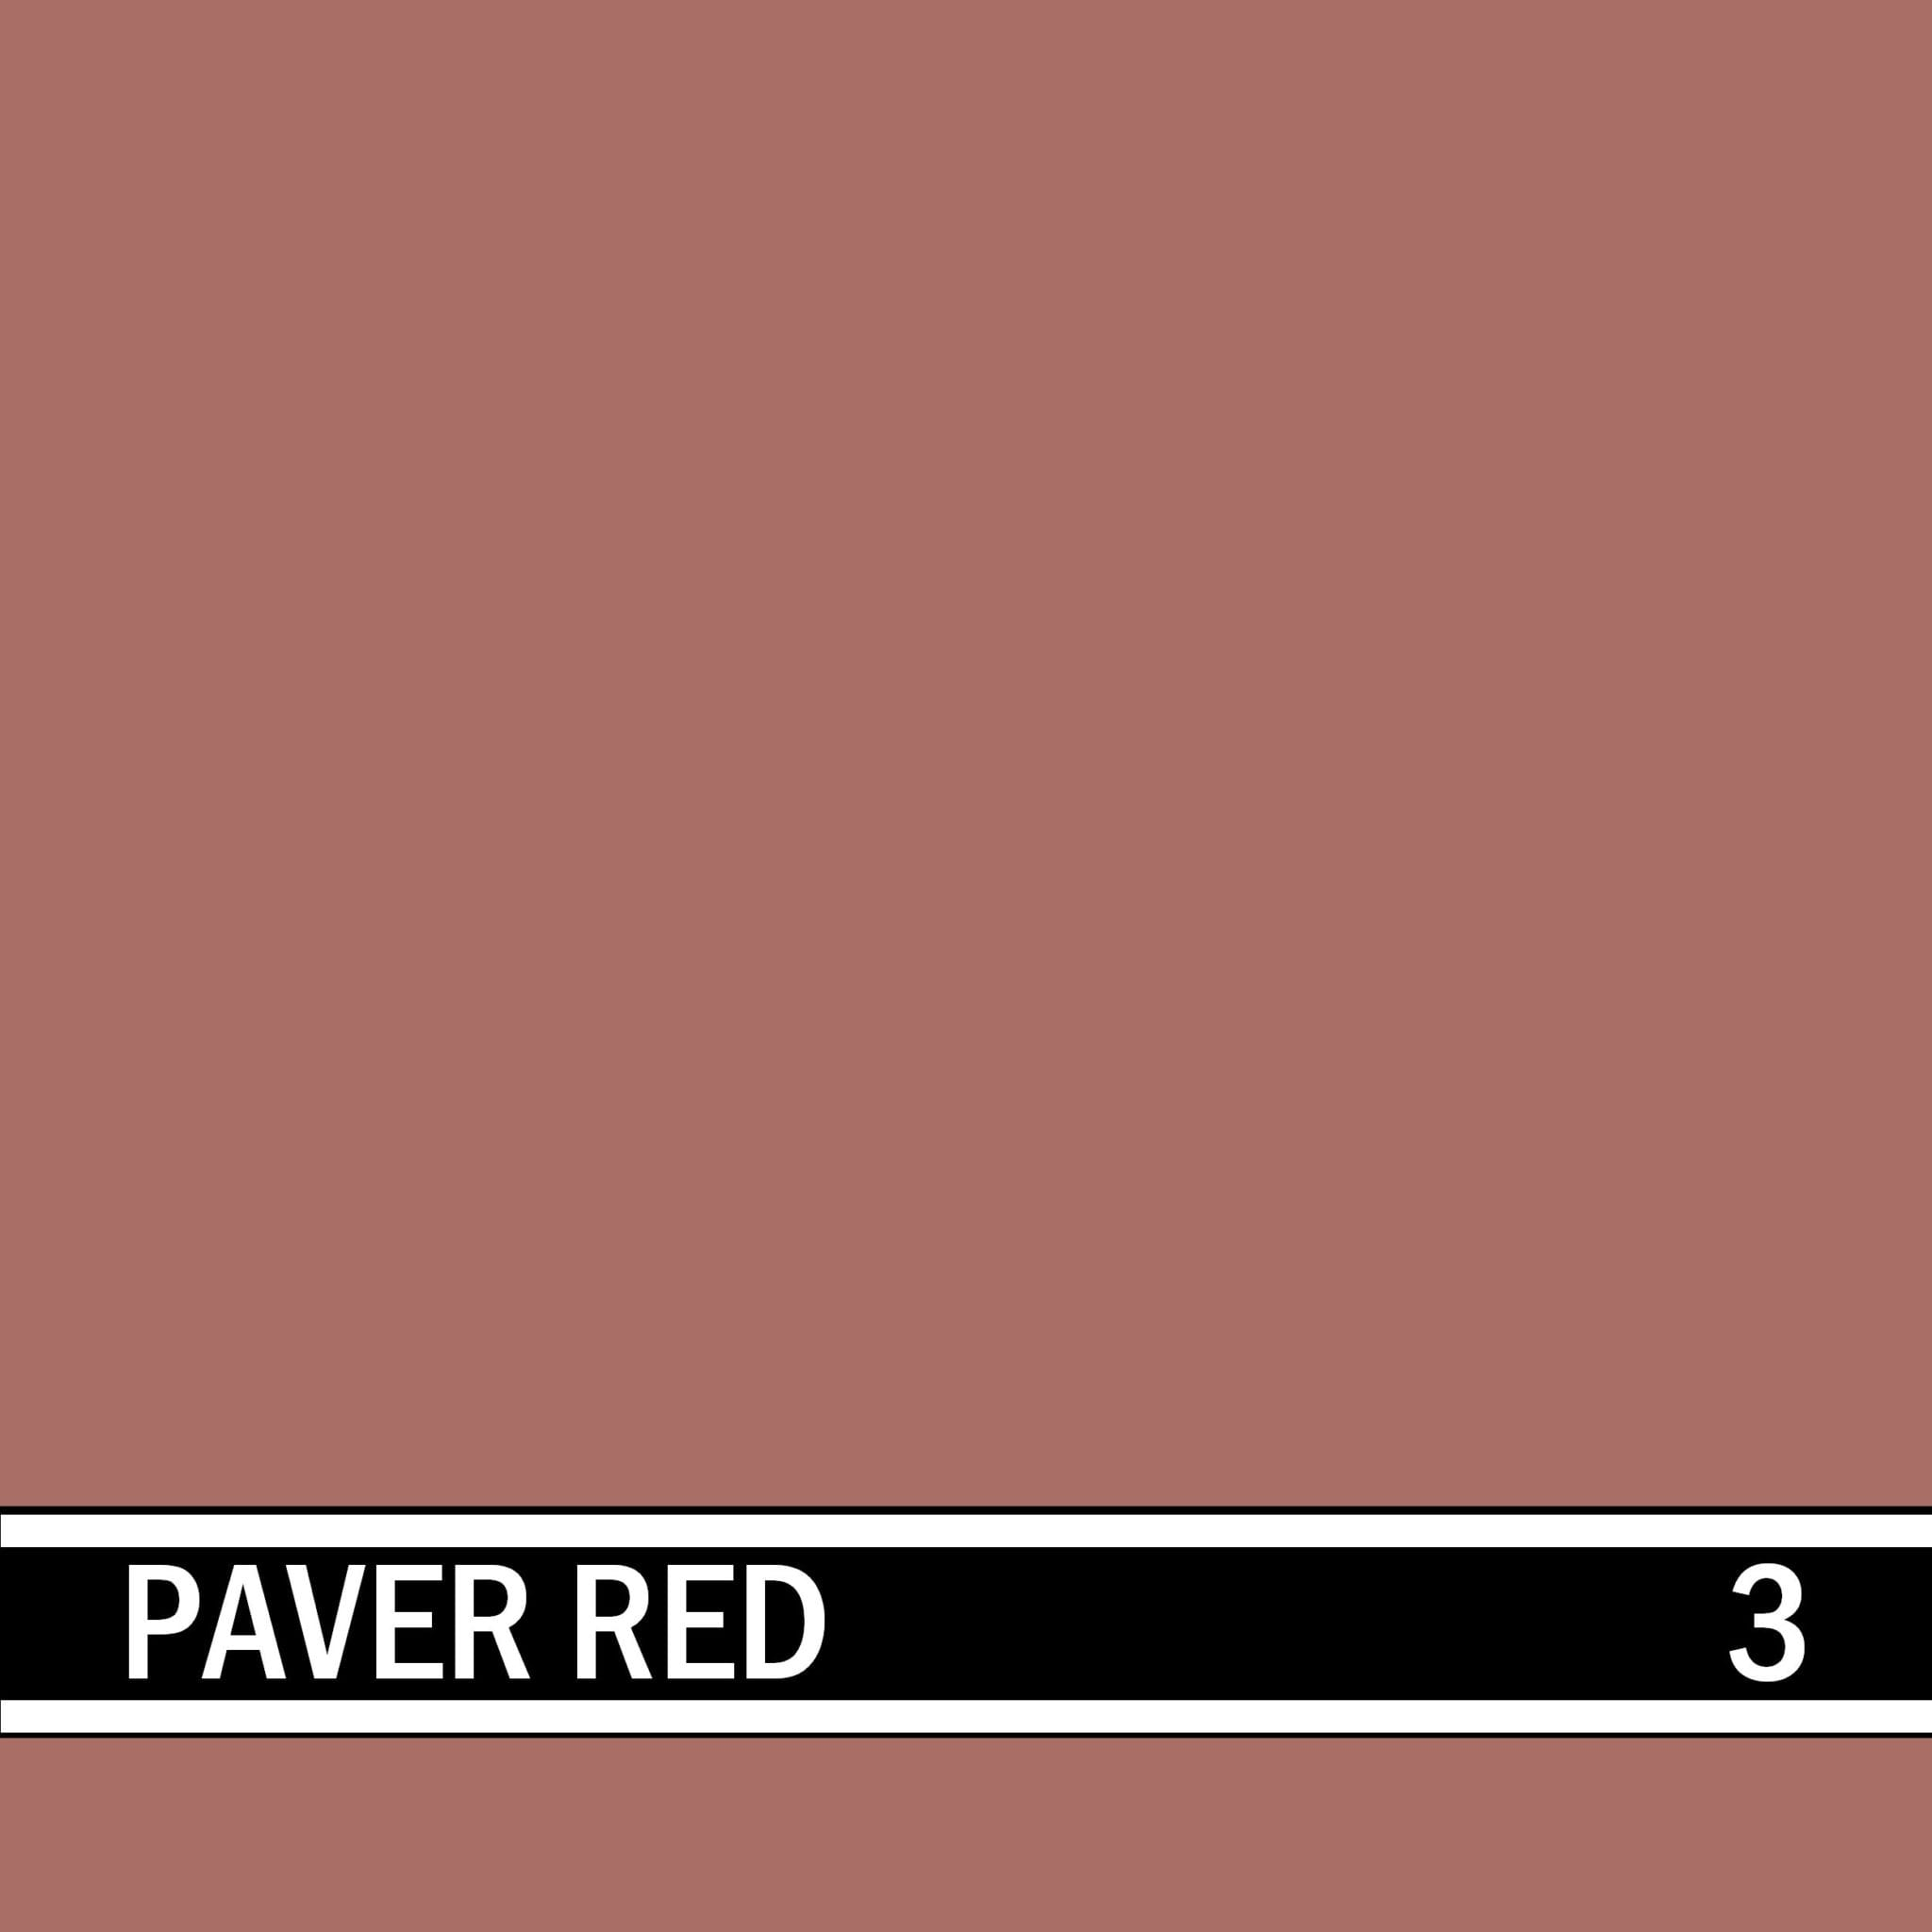 Paver Red integral concrete color for stamped concrete and decorative colored concrete